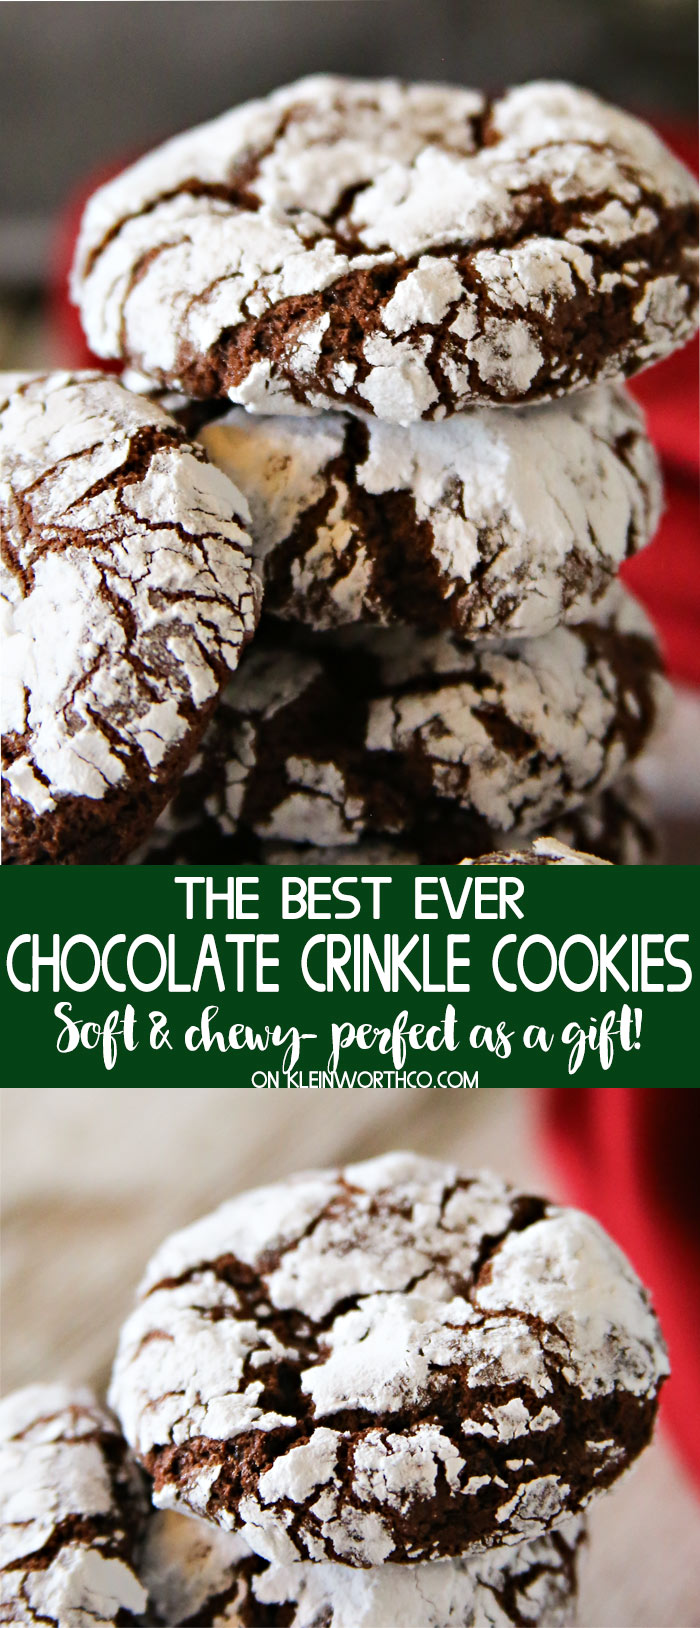 Easy Chocolate Crinkle Cookies Kleinworth Co